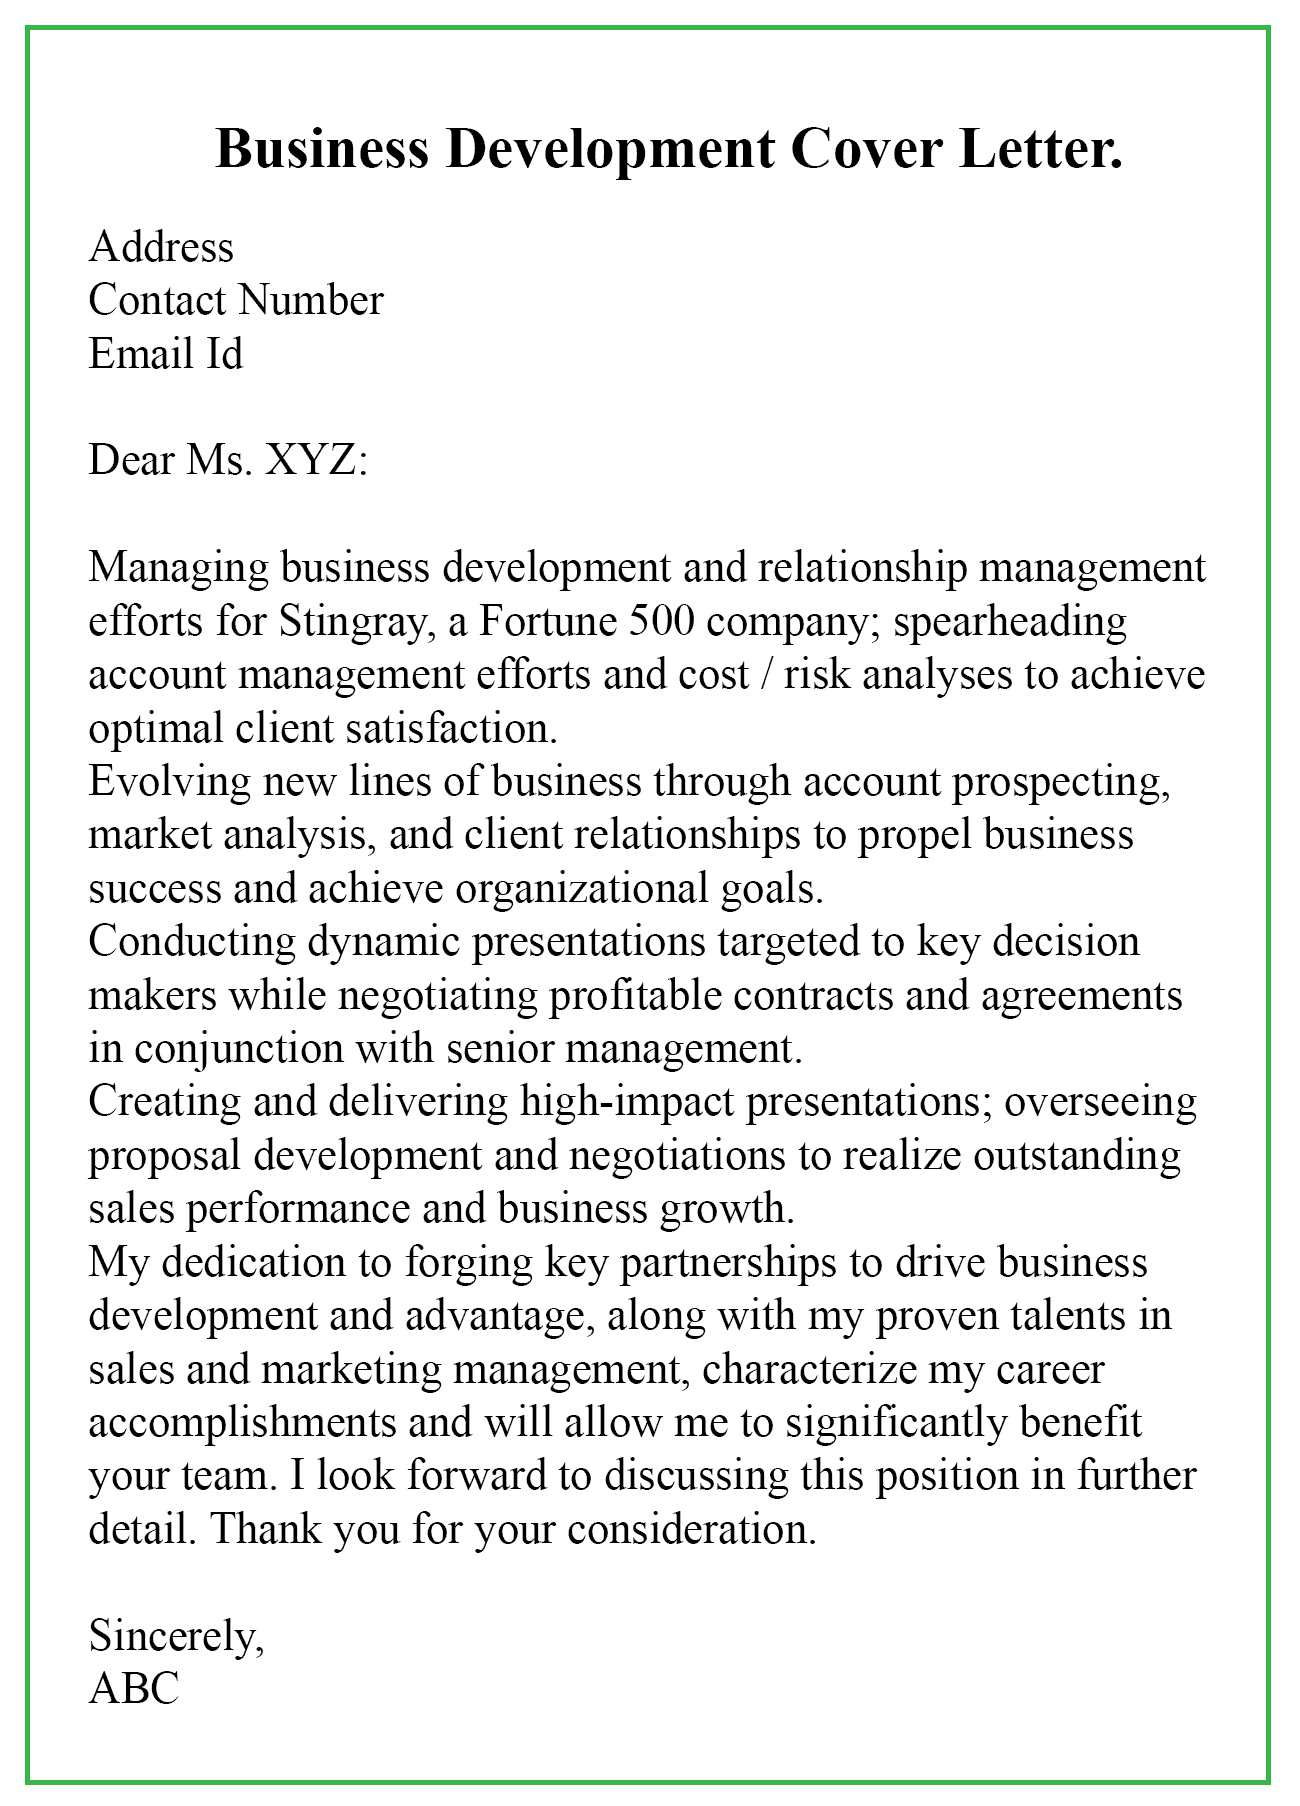 Sample Business Development Letter